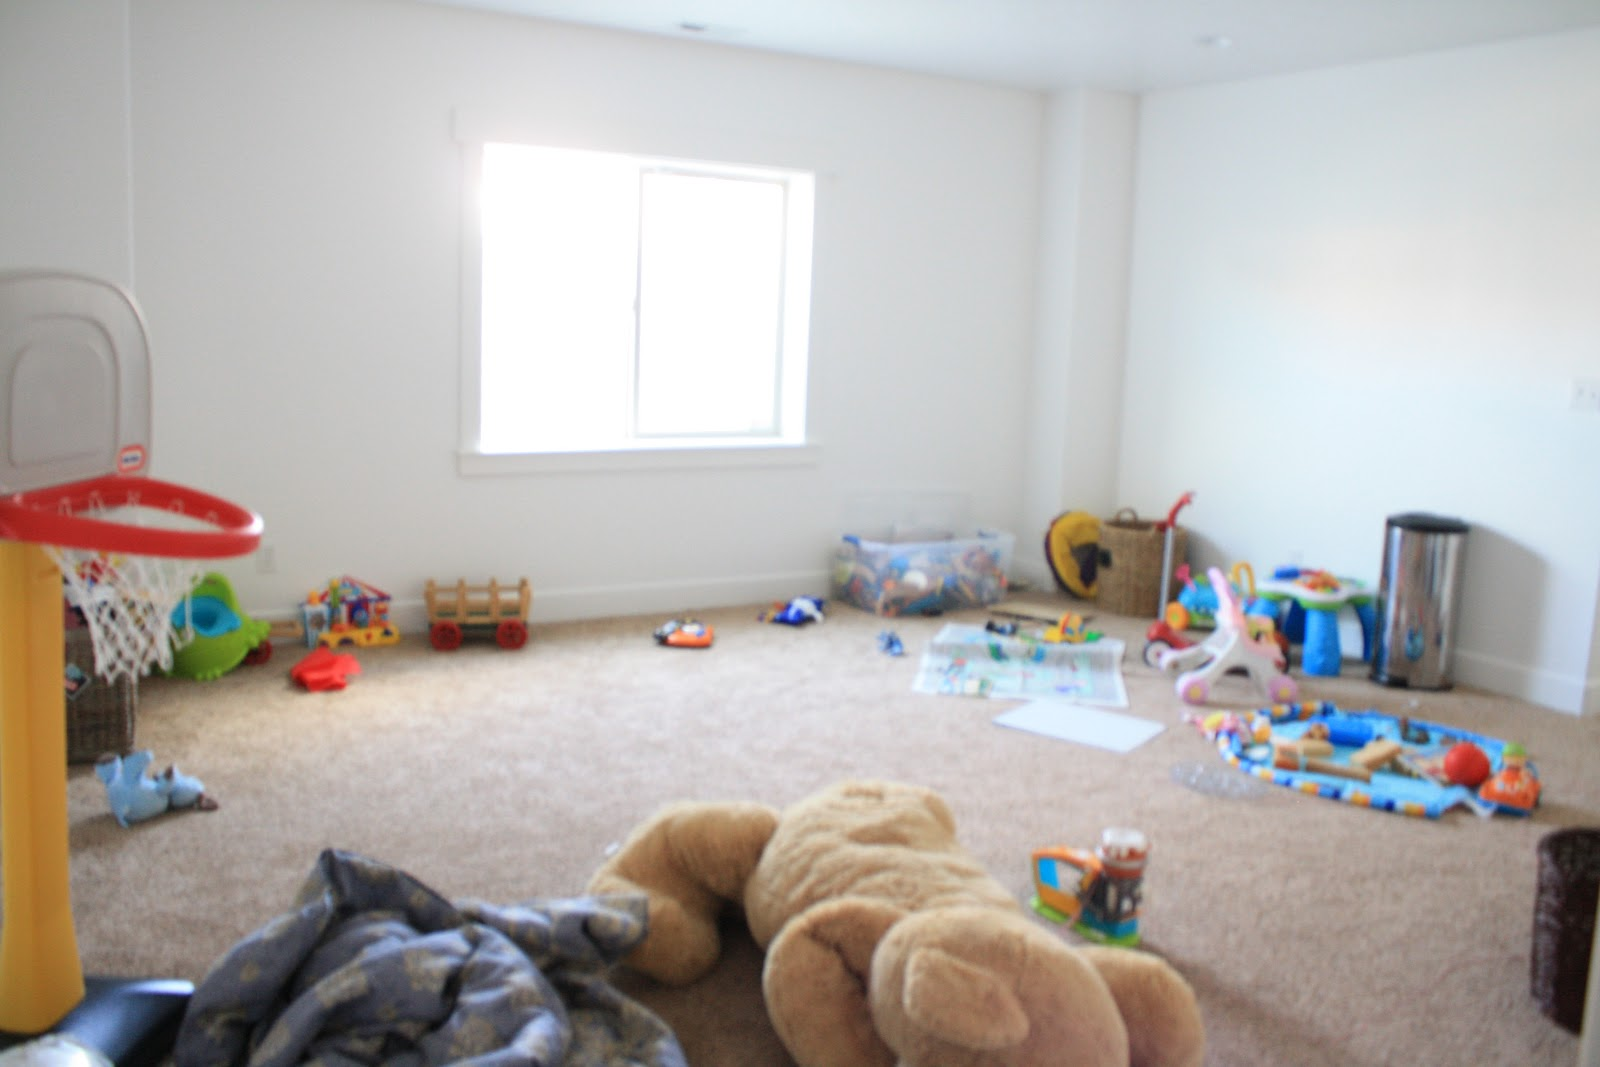 Our Land of Nod Playroom House of Jade Interiors Blog